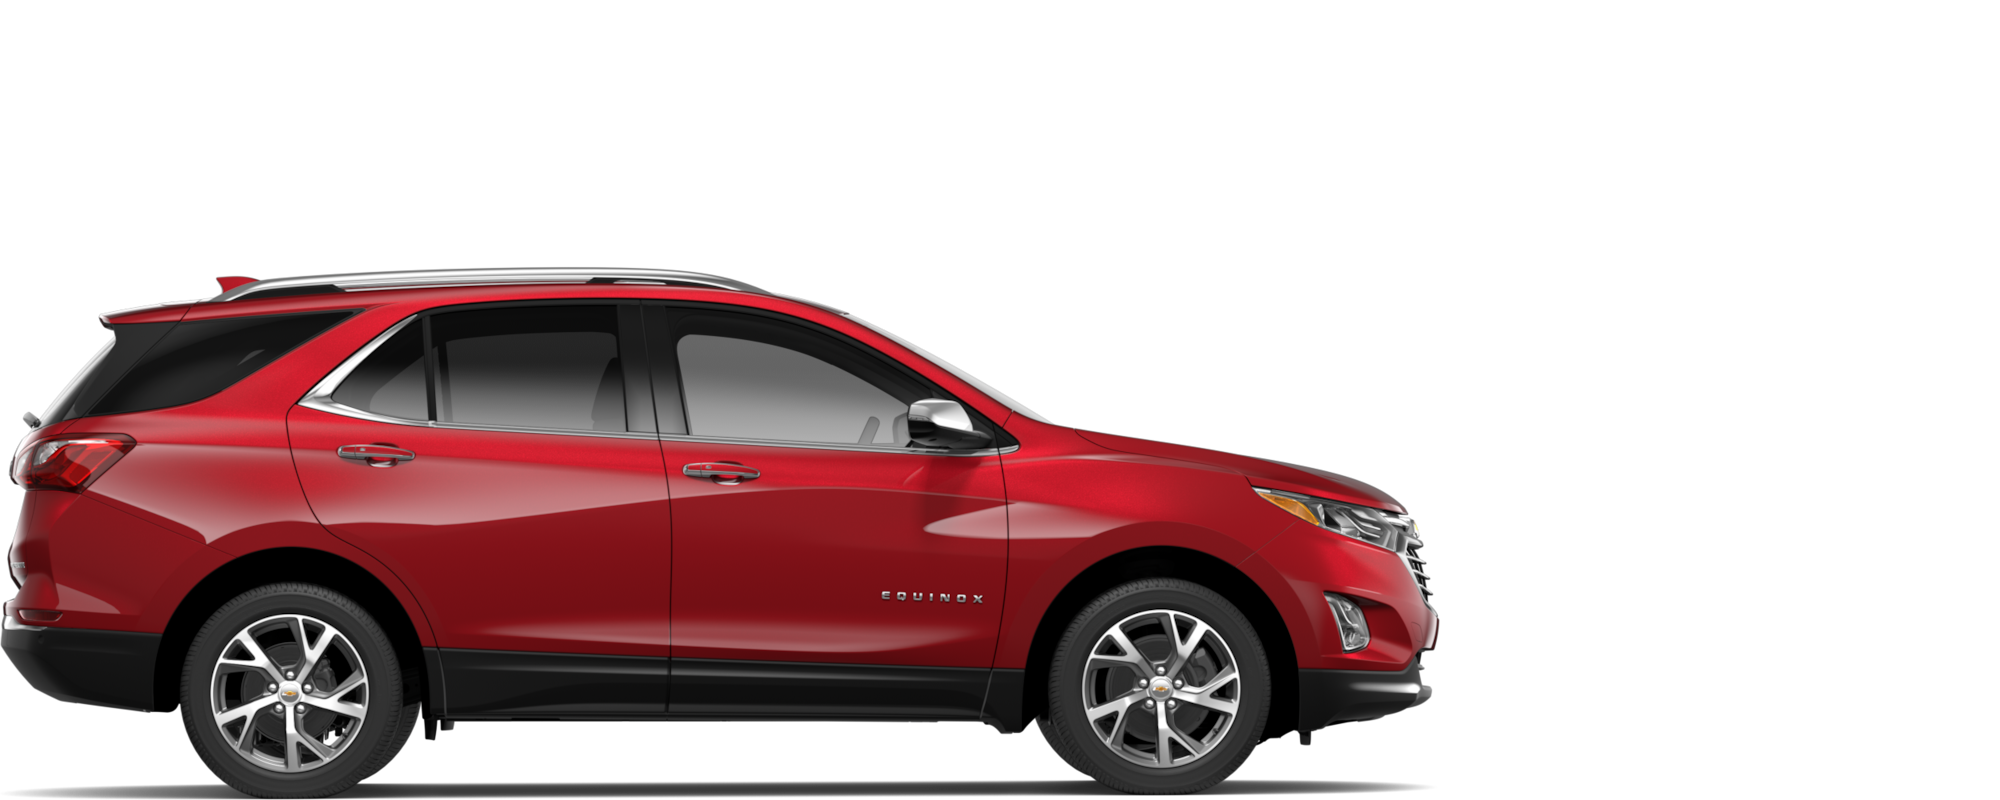 Special factory incentives on 2019 Chevrolet Equinox in Roseville CA